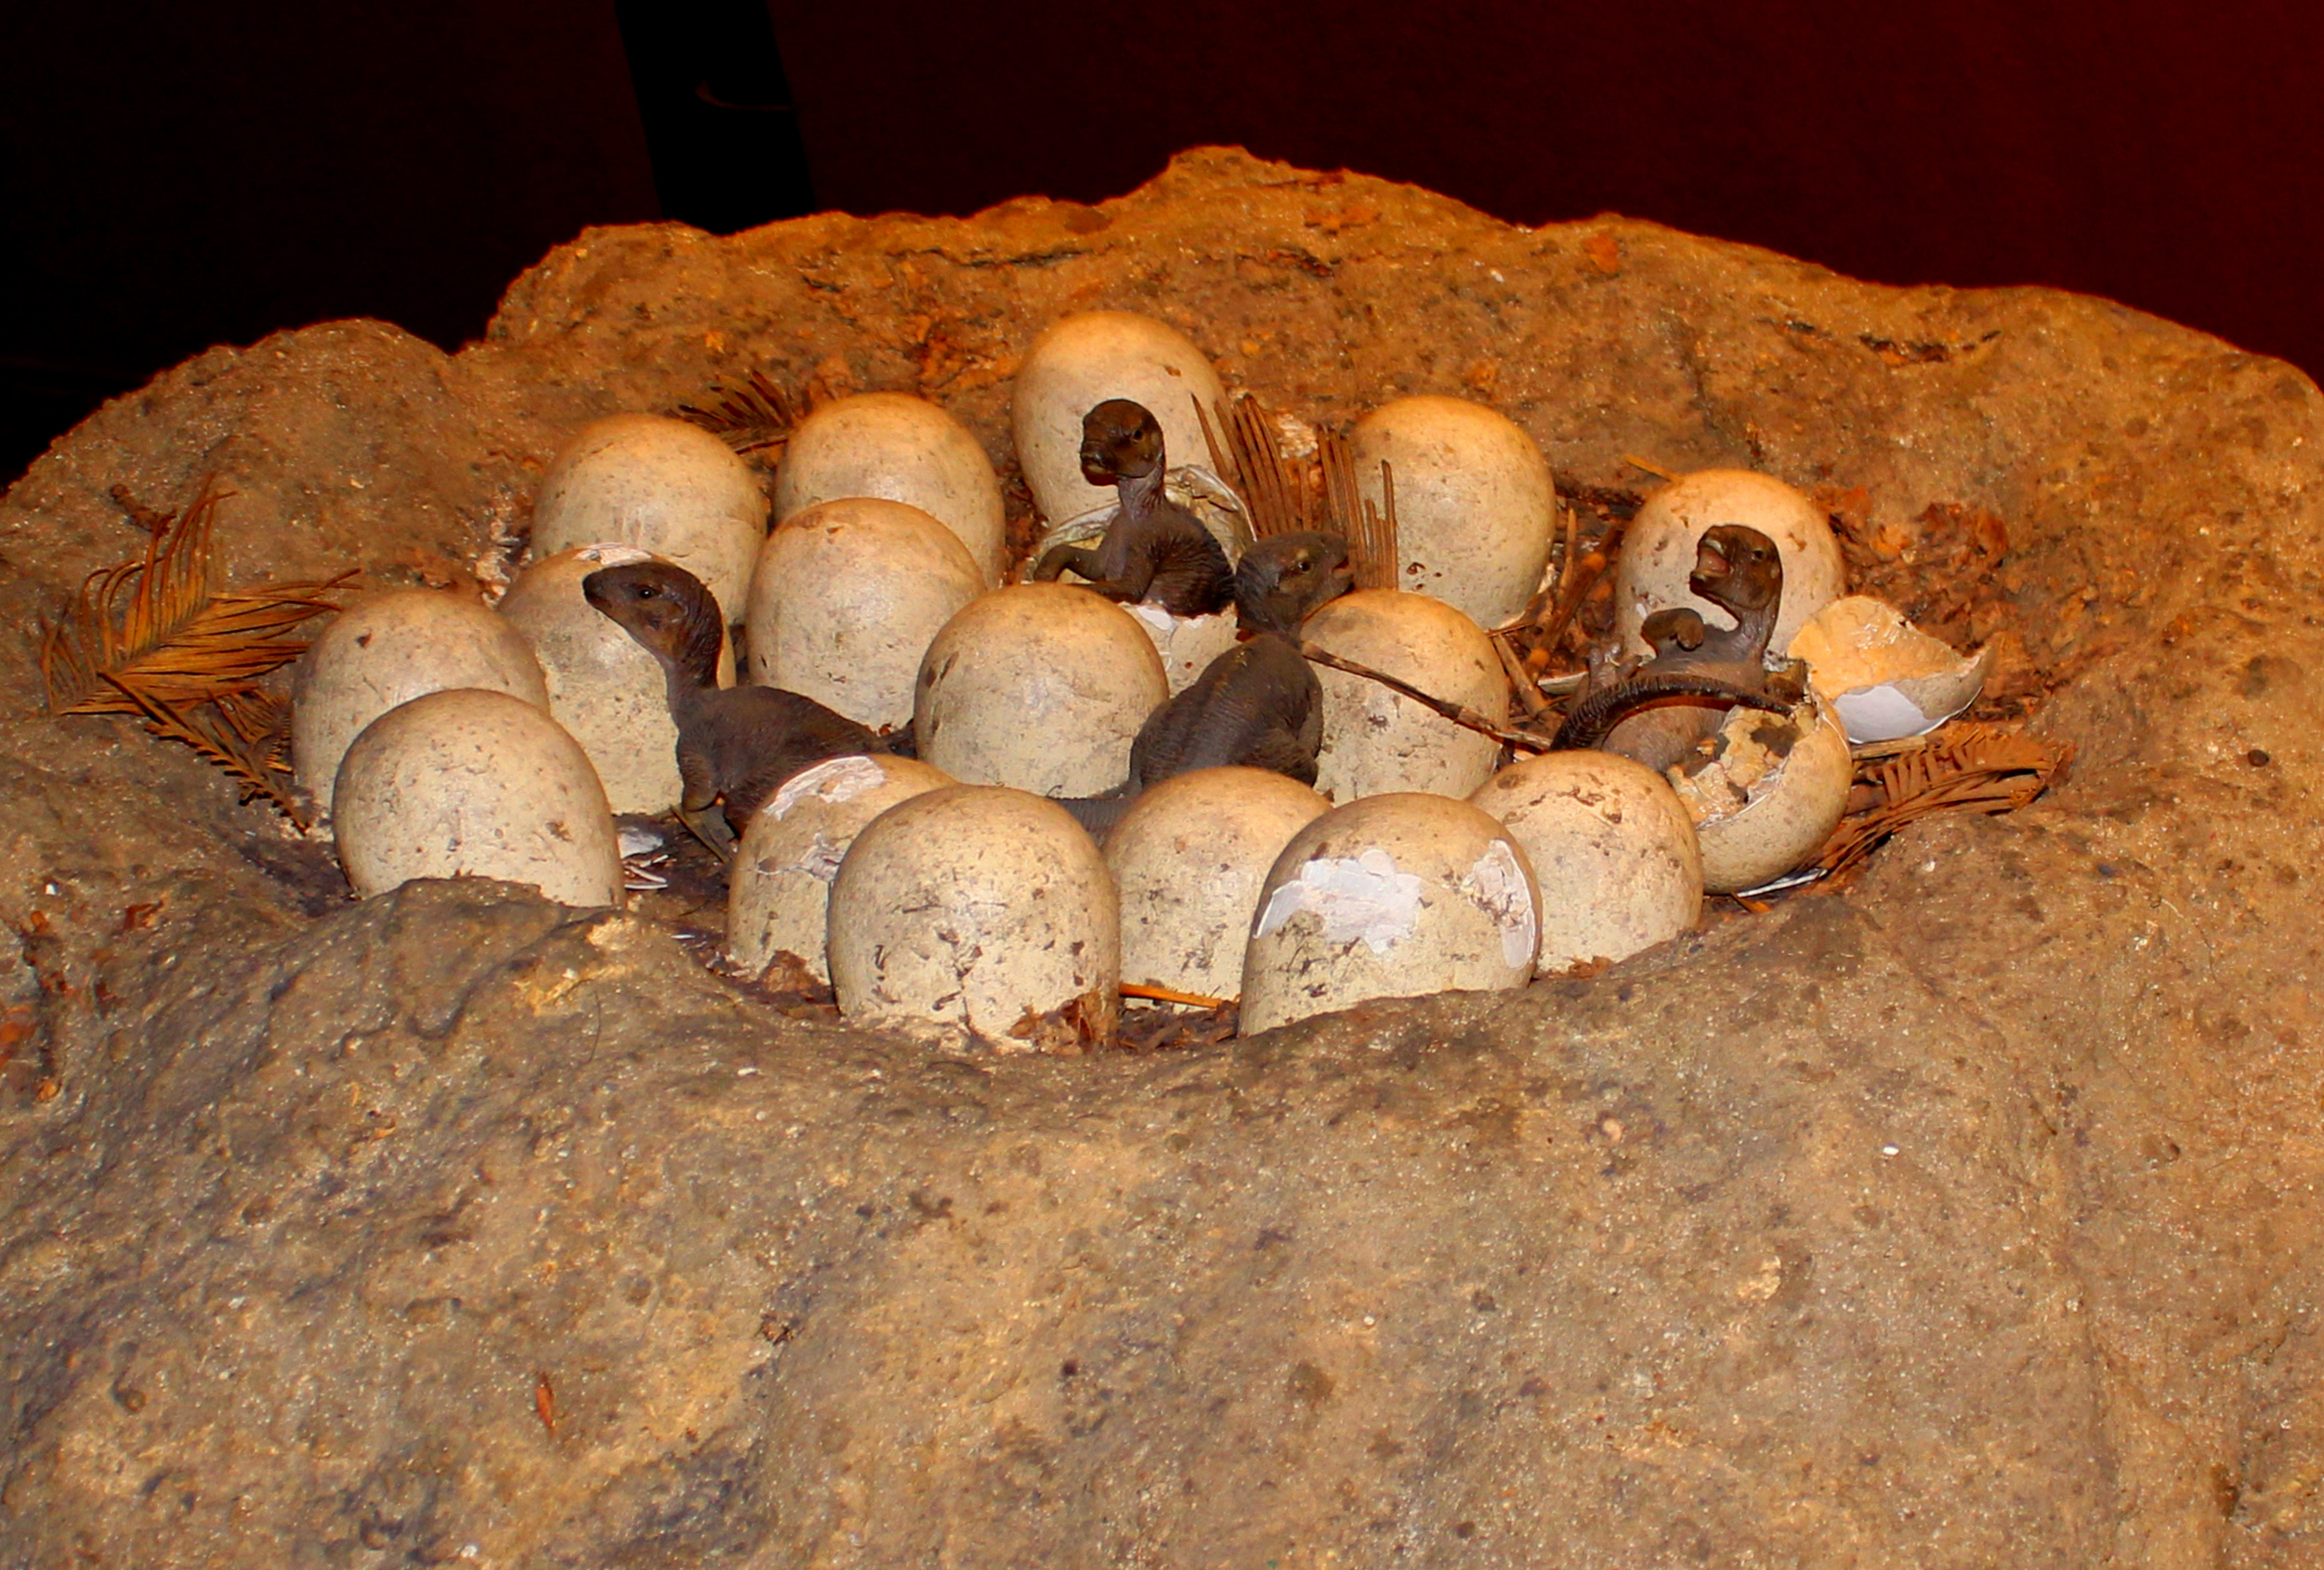 Newly hatched dinosaur eggs photo